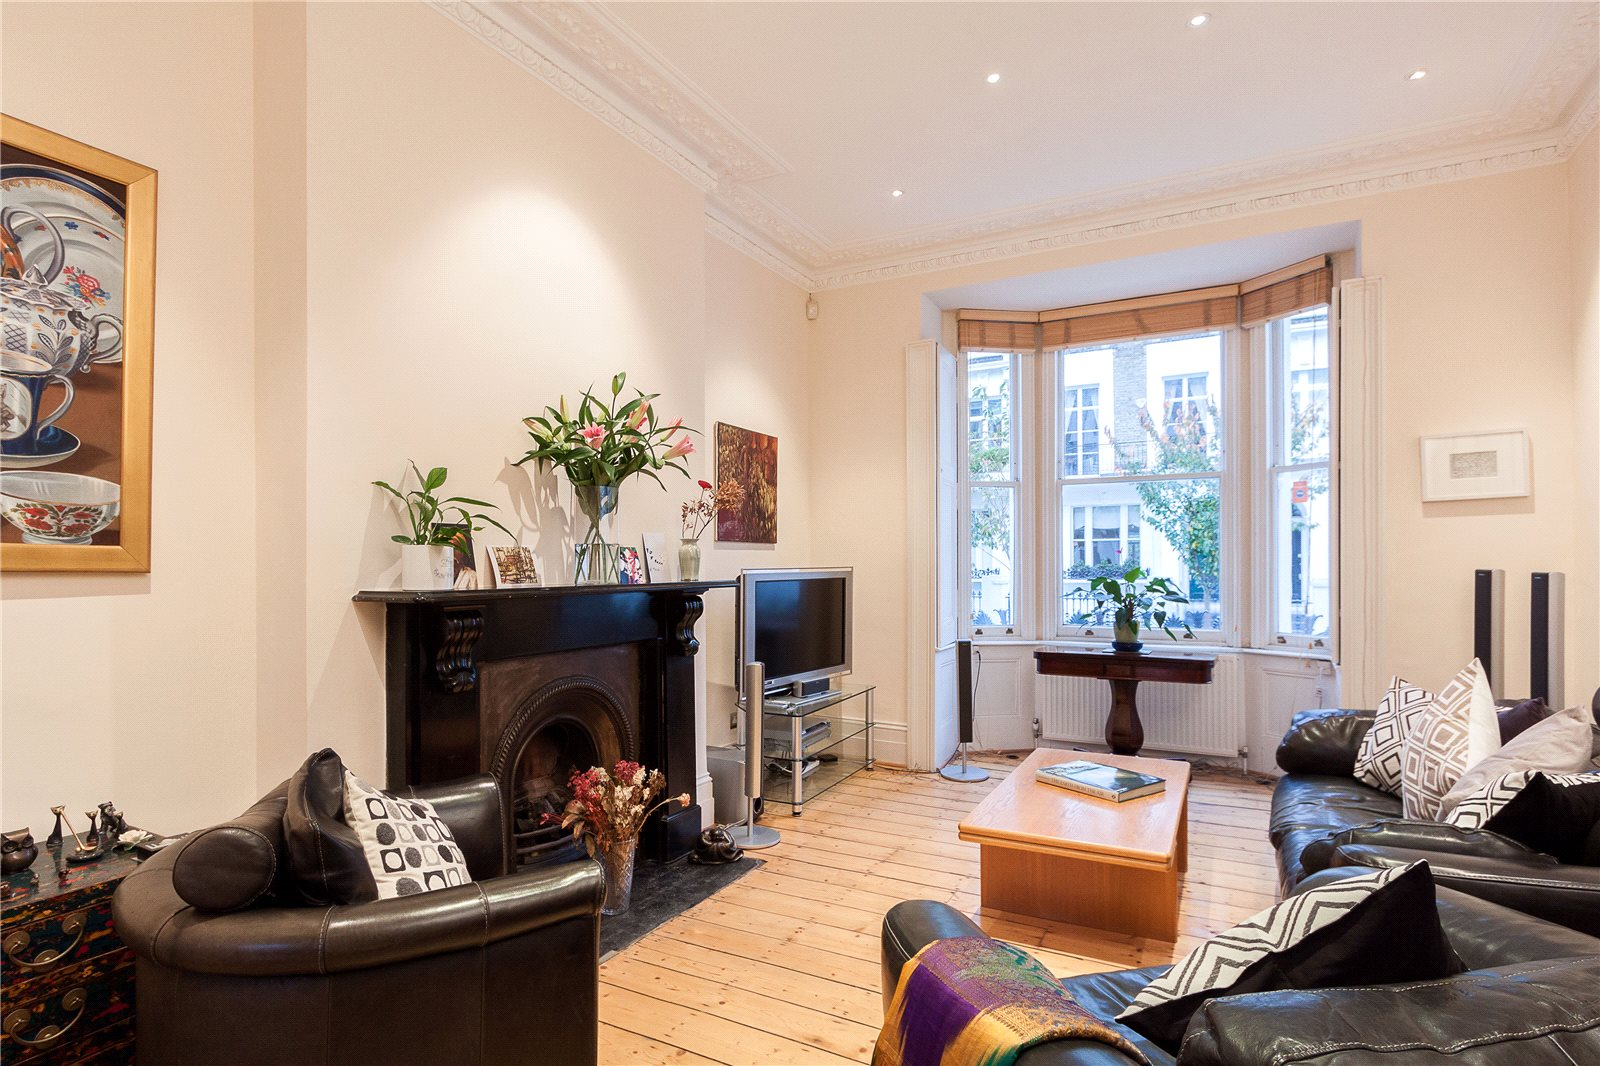 Single Family Home for Sale at Redcliffe Road, Chelsea, London, SW10 Chelsea, London, England